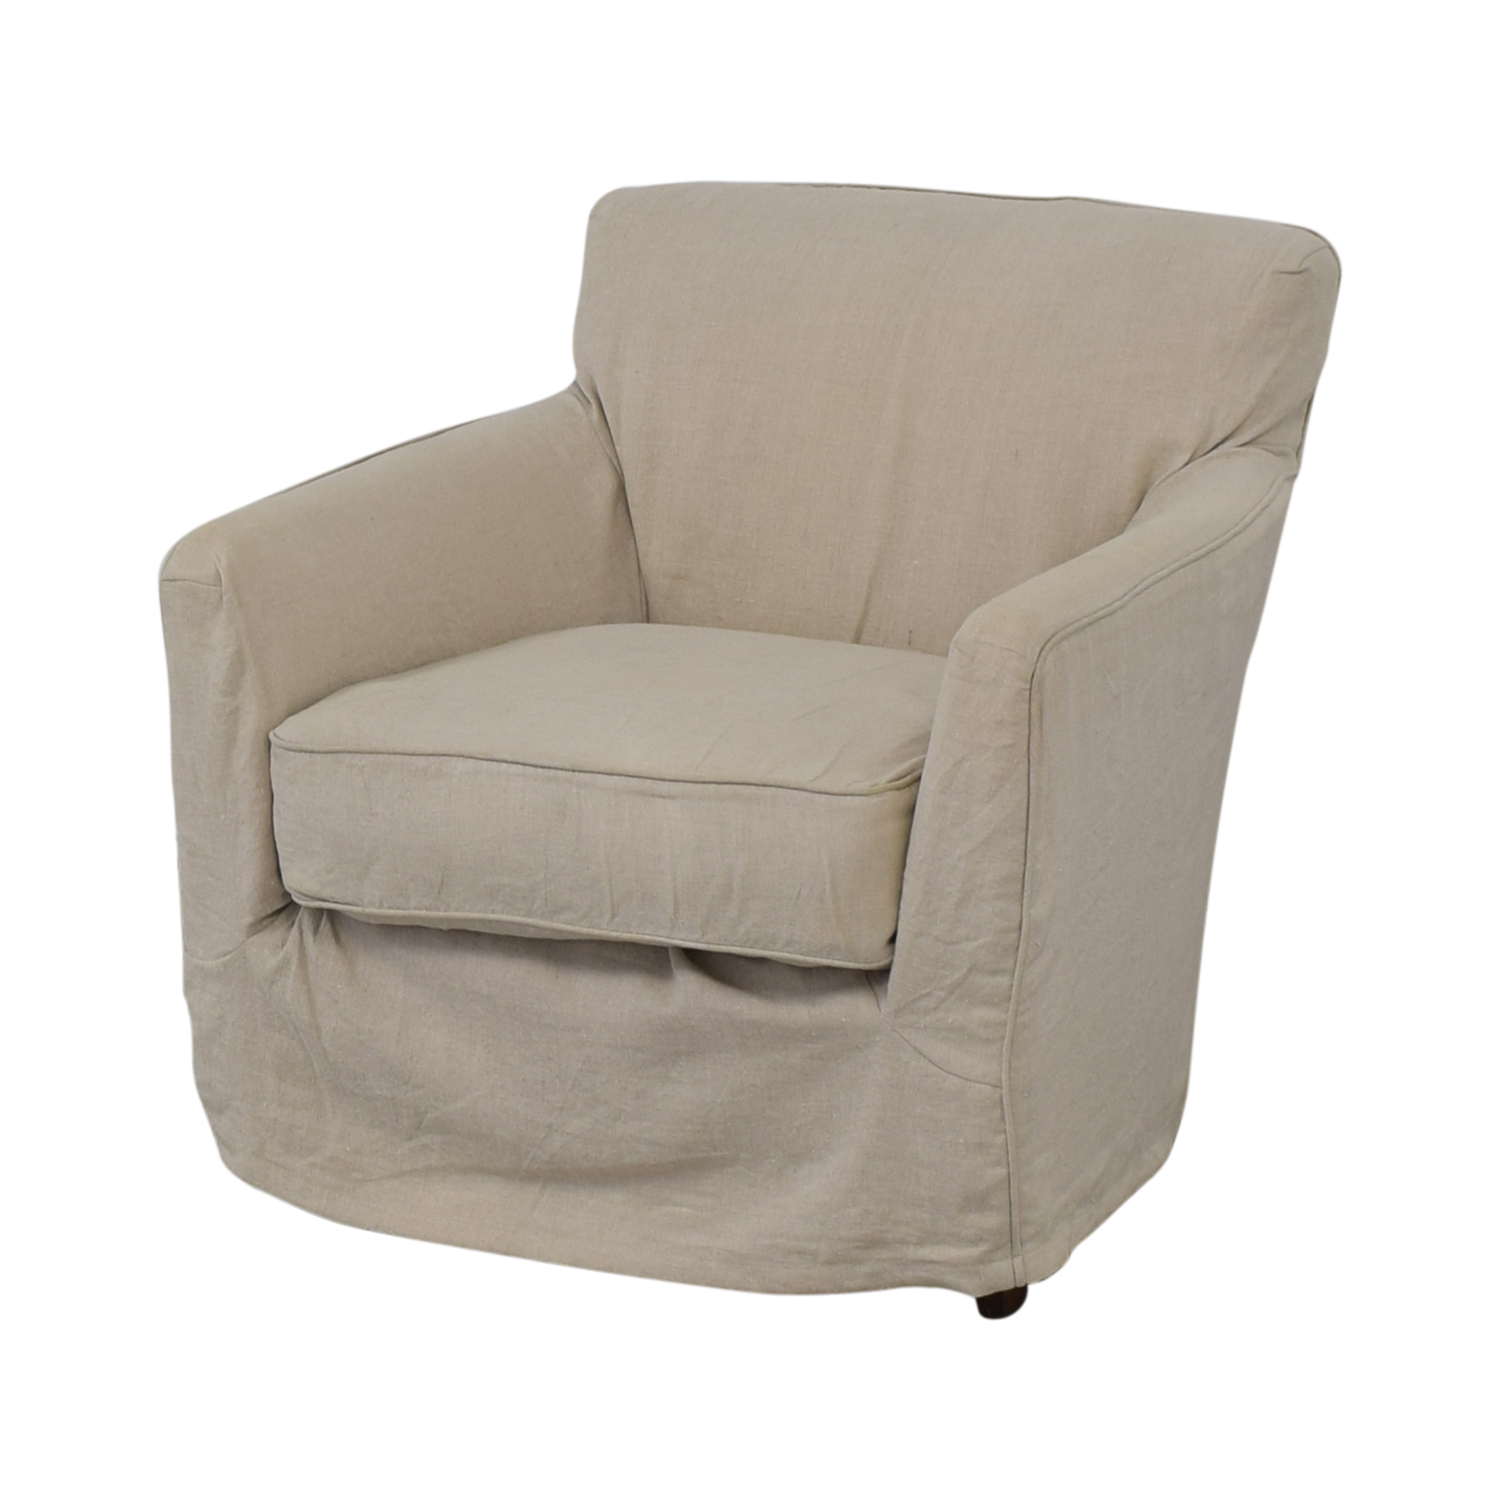 shop Crate & Barrel Linen Slipcovered Armchair Crate & Barrel